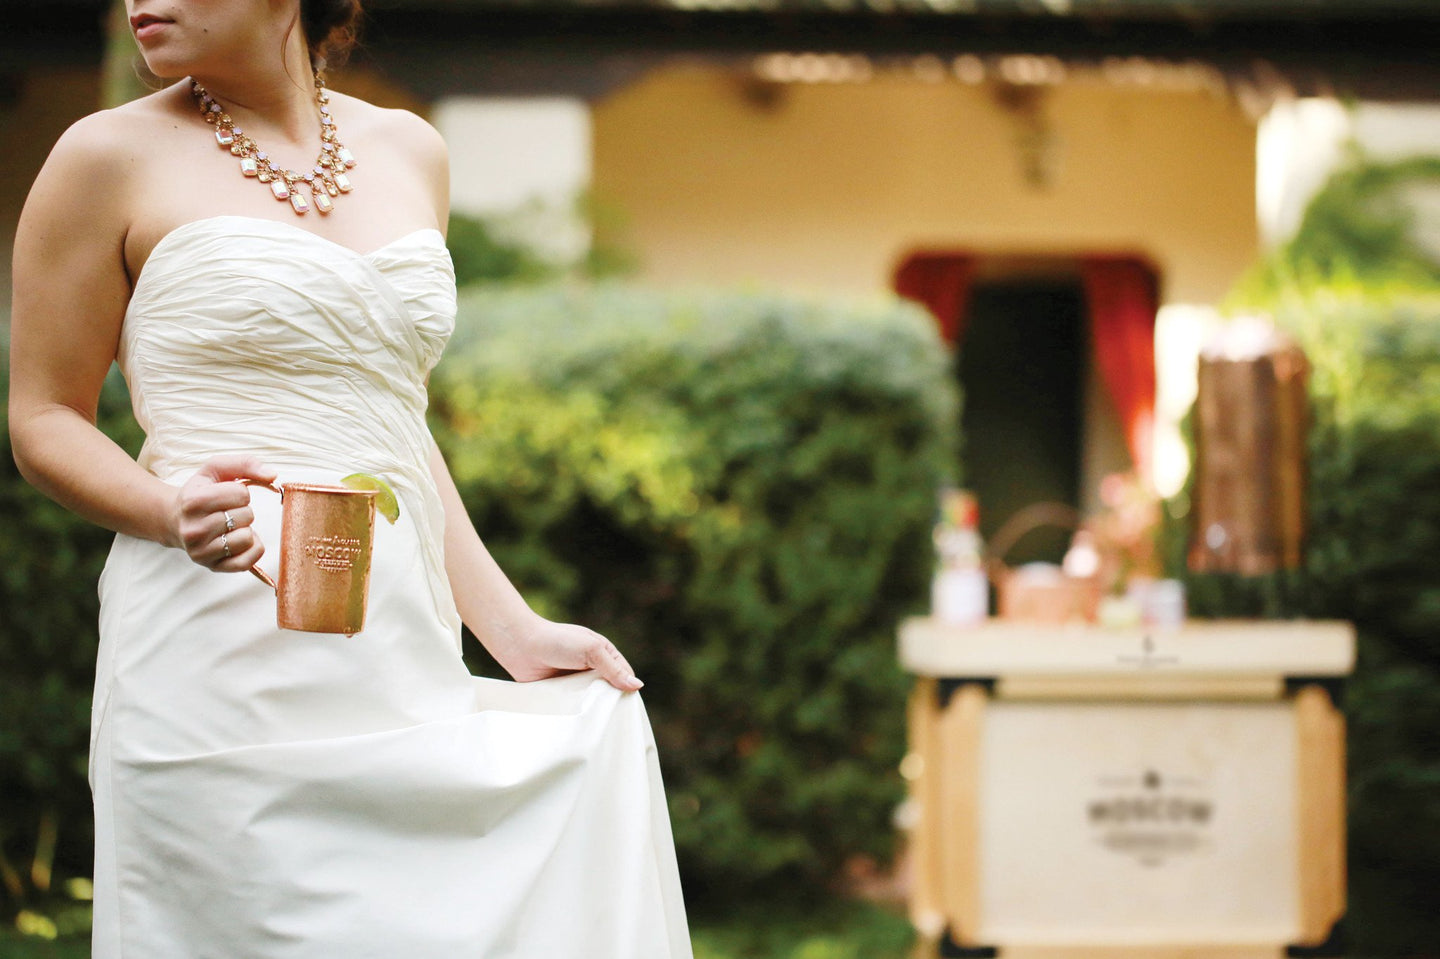 Copper Moscow Mule Mugs For Weddings